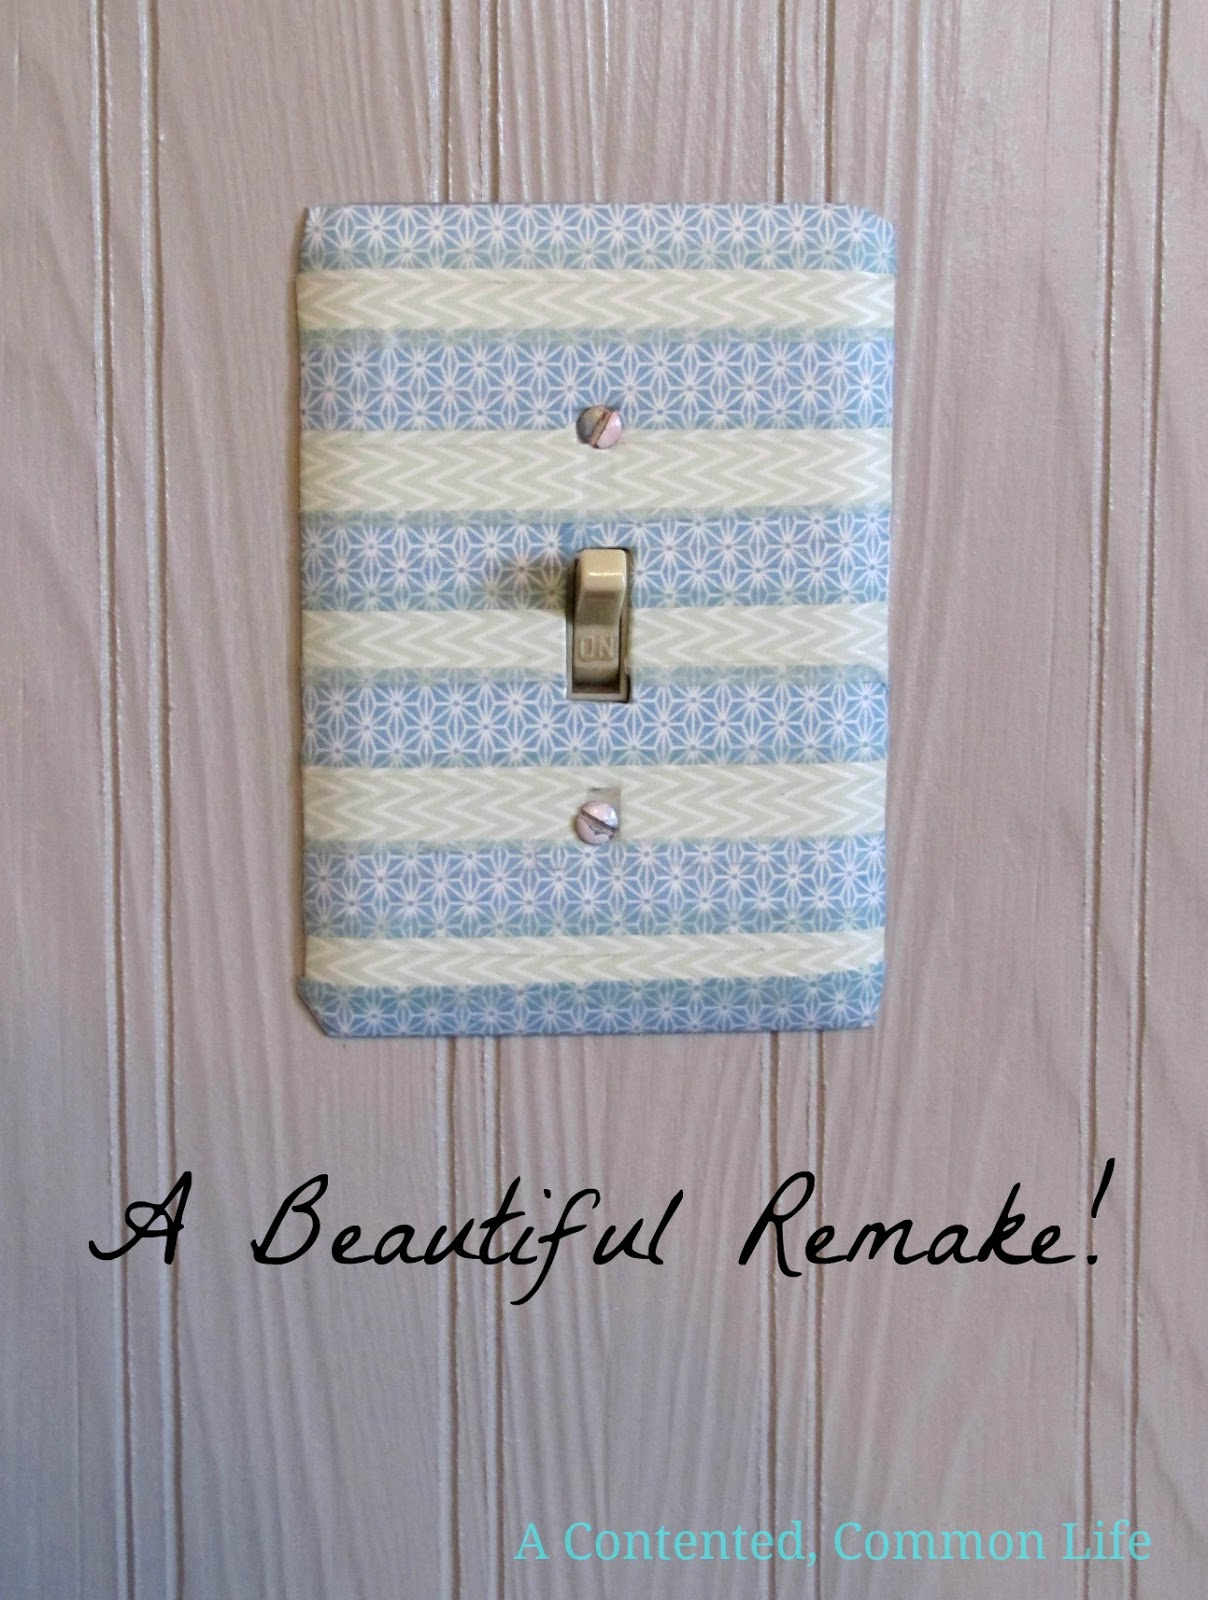 A Contented, Common Life: Tutorial: Washi Tape Light Switch Make Over